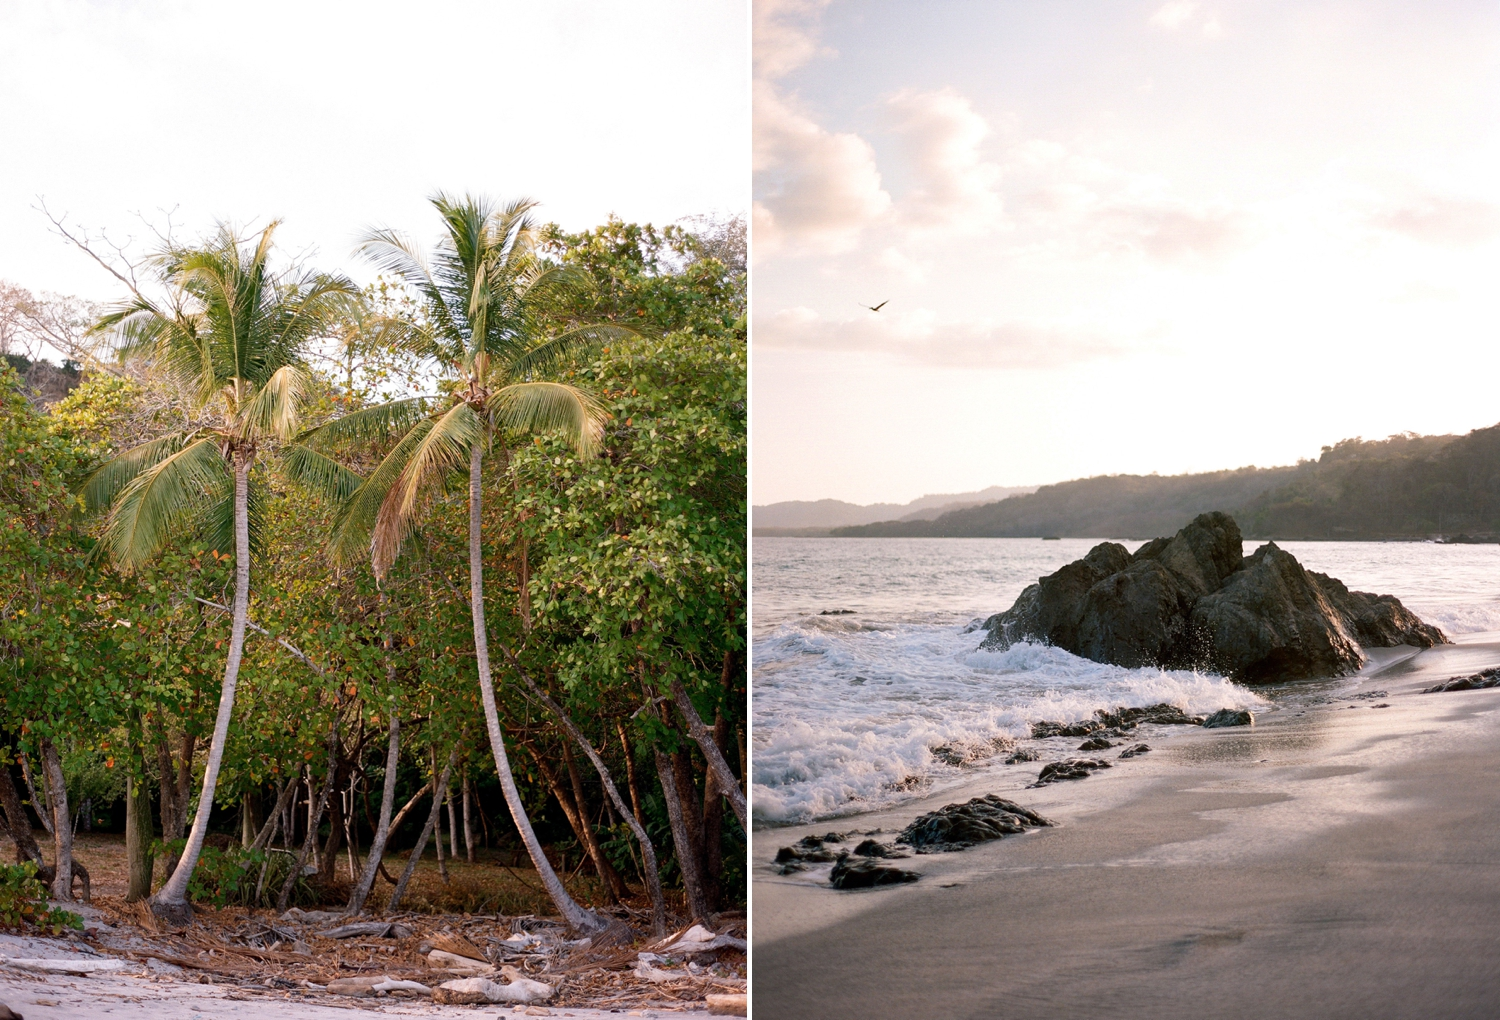 andaz resort, costa rica fine art film photographer